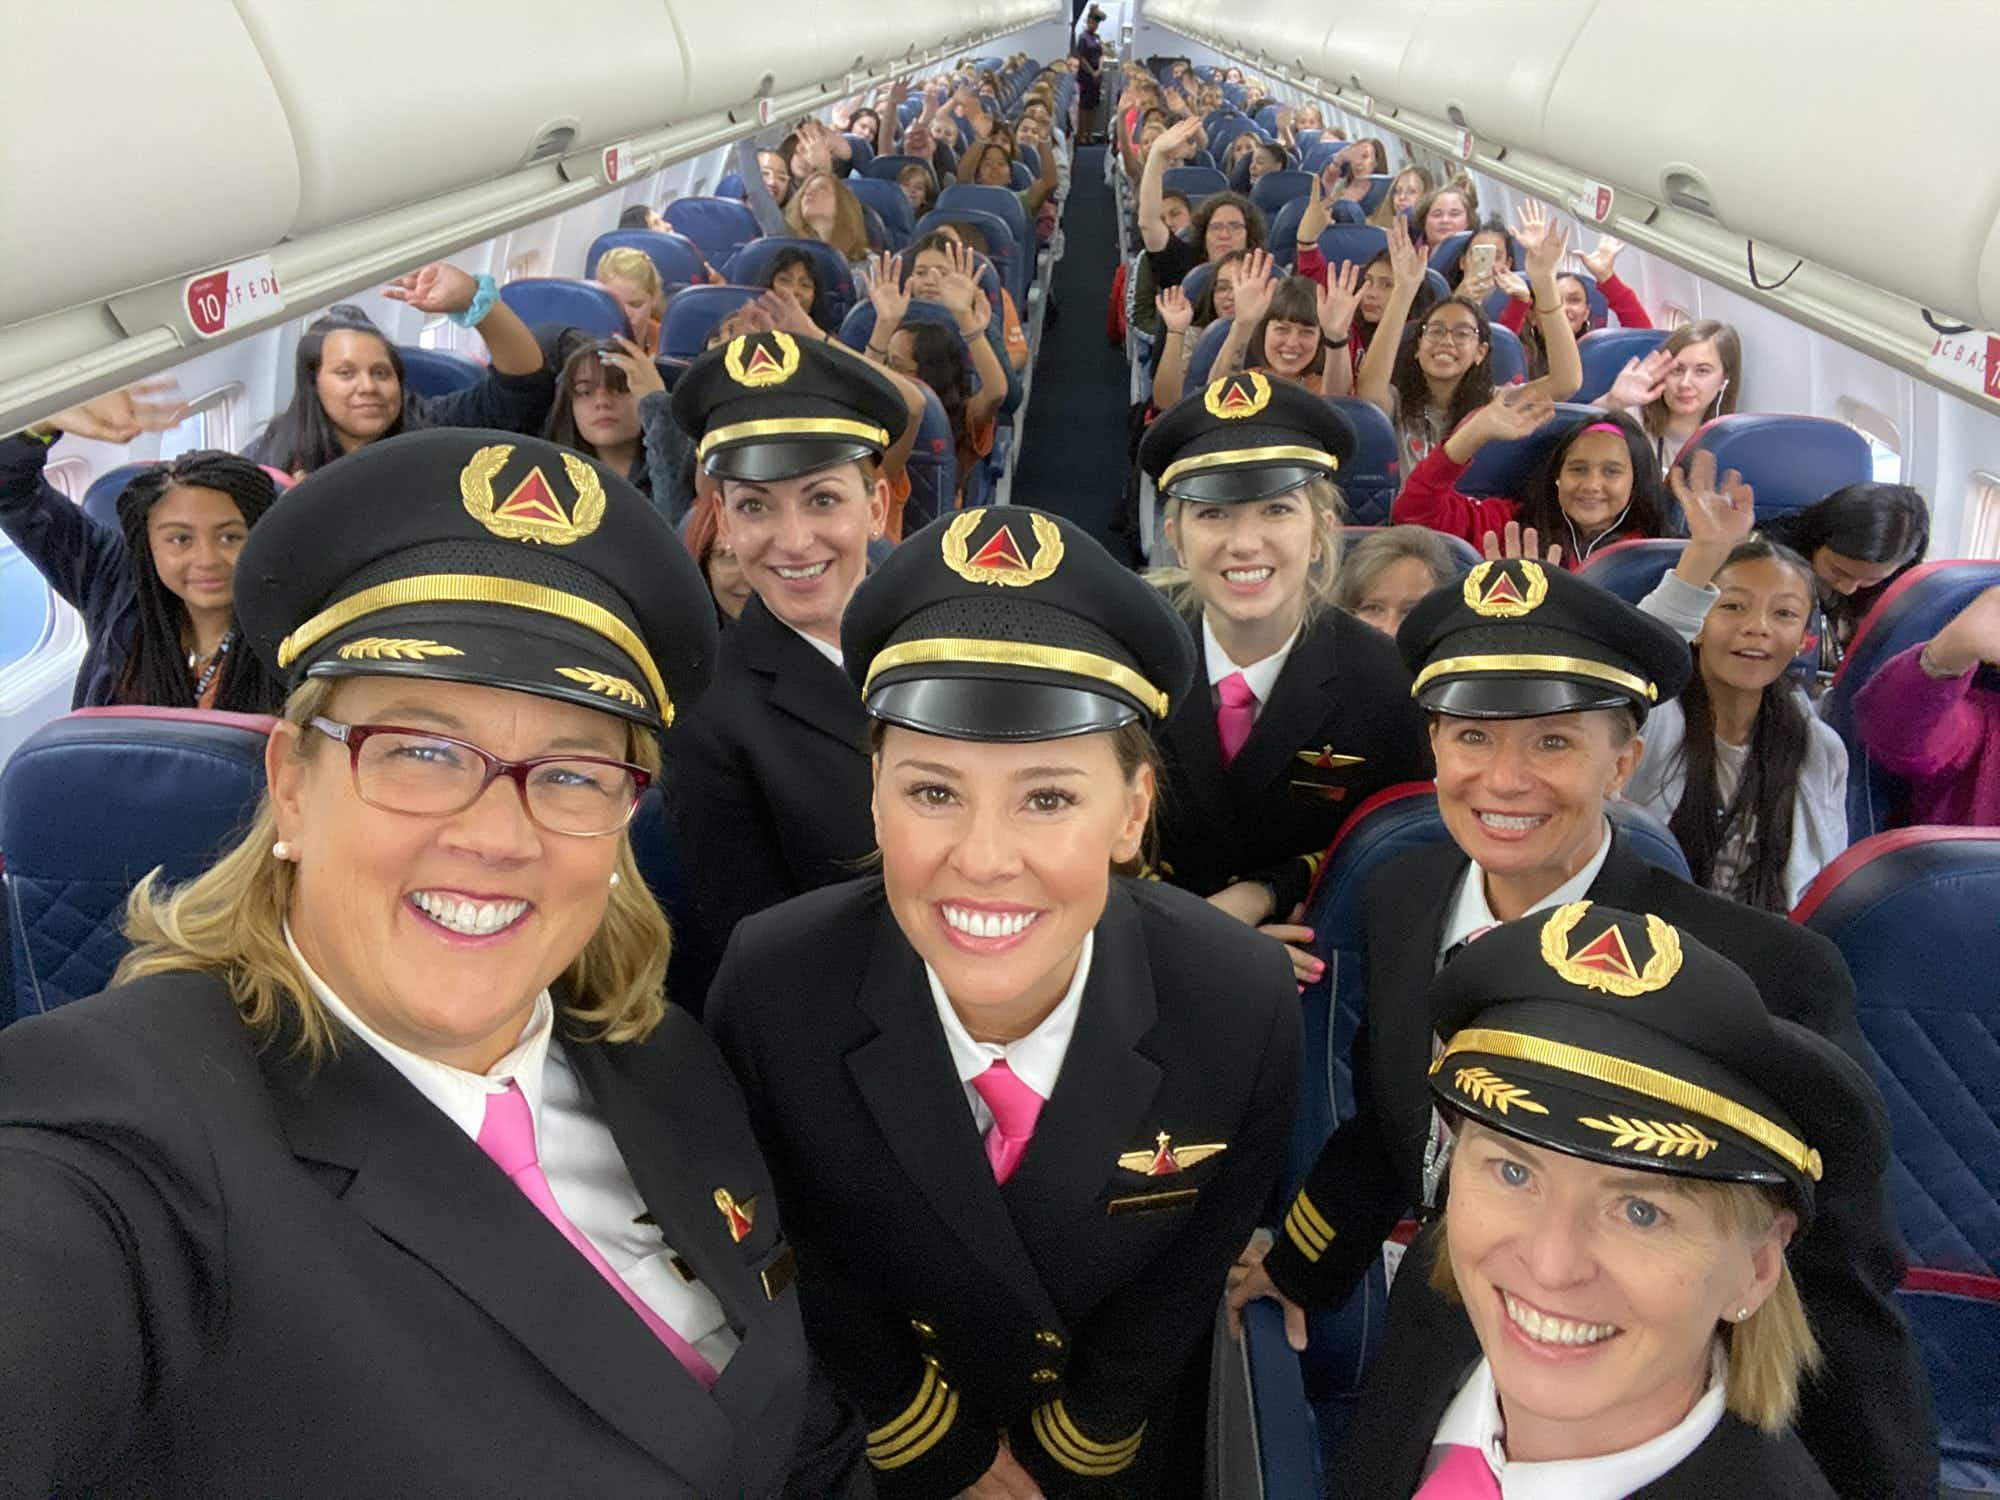 Delta recent flew 120 girls aged 12-18 from Salt Lake City to NASA © Delta